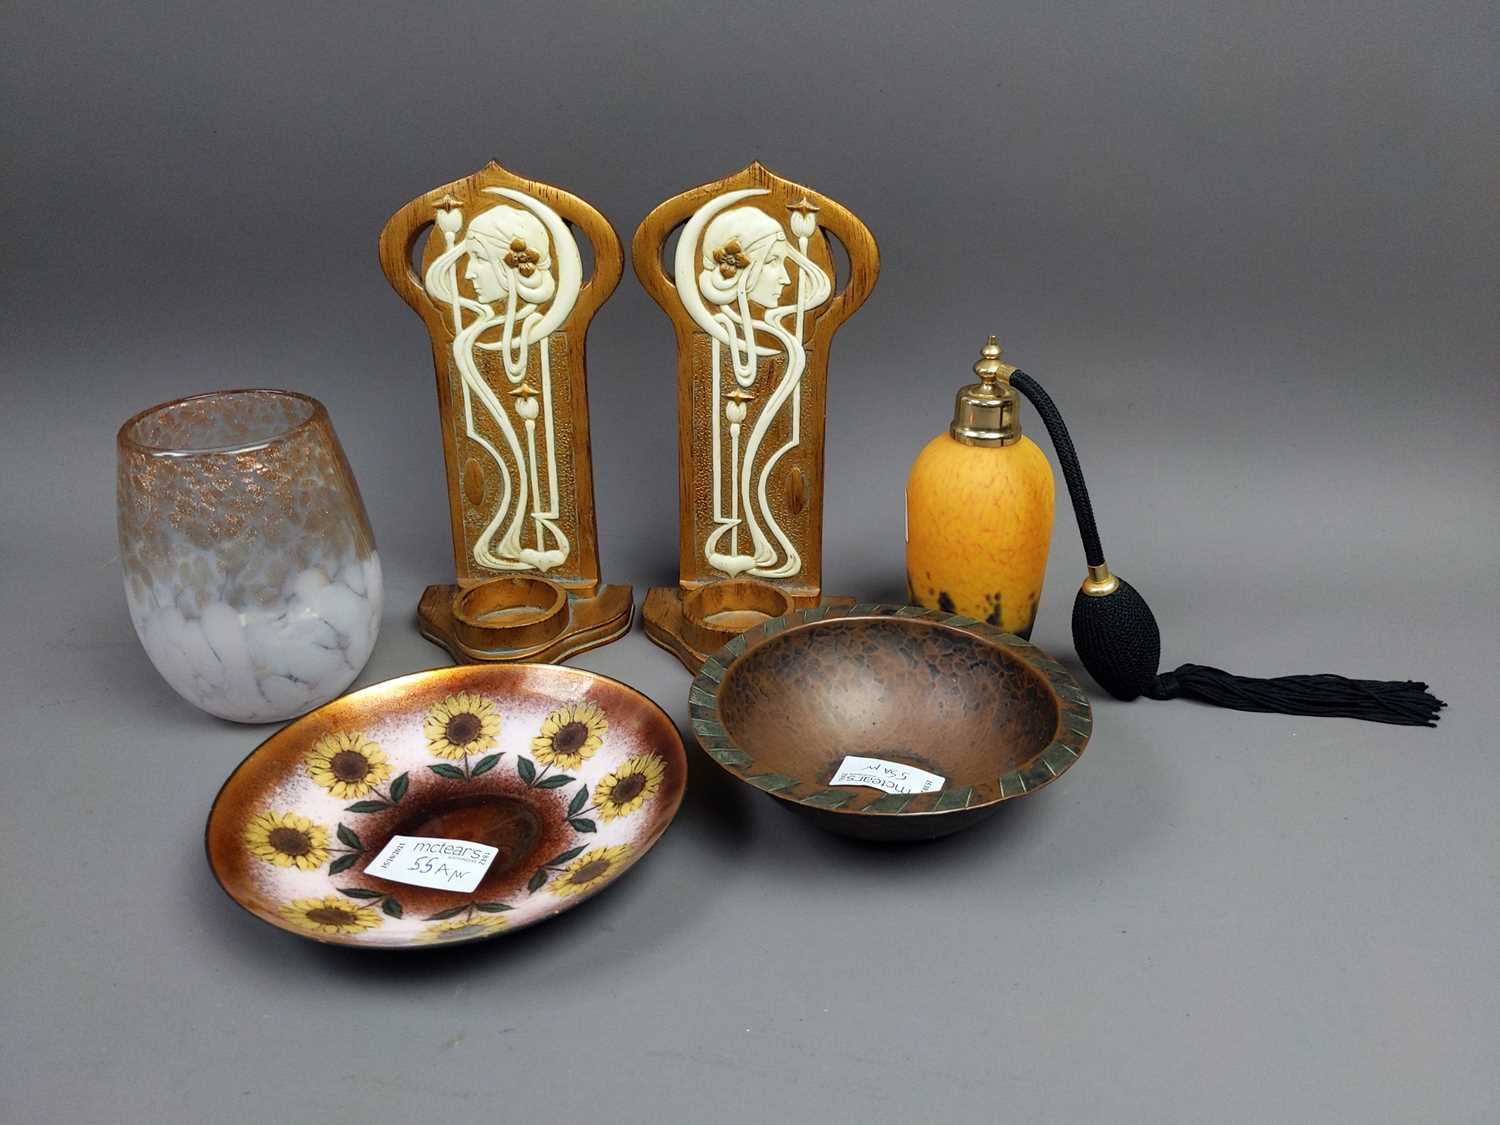 Lot 55 - A PAIR OF ART NOUVEAU STYLE SCONCES AND OTHERS